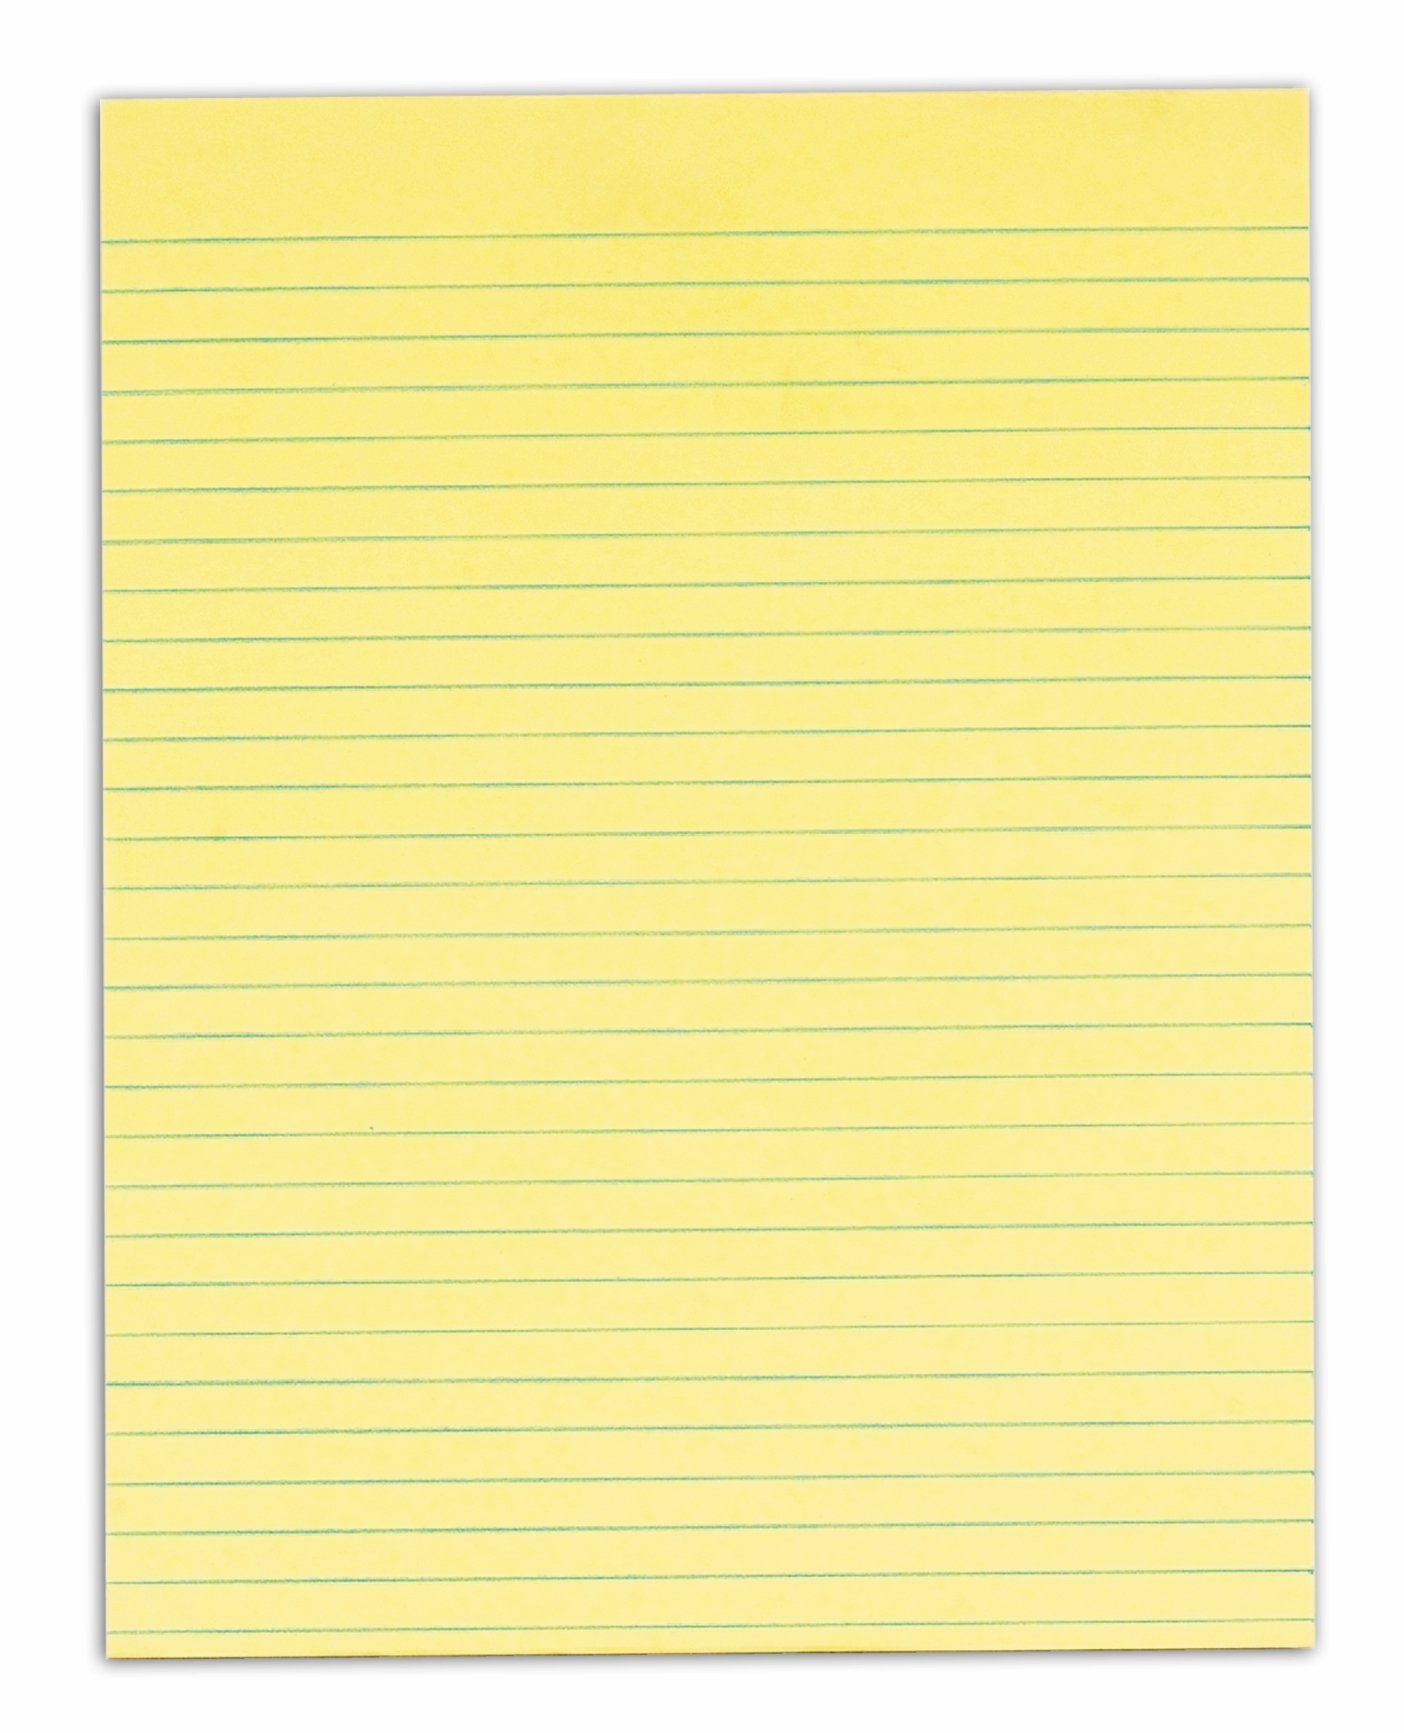 TOPS Second Nature 100% Recycled Legal Pad, 8-1/2 x 11 Inches, Gum-Top, Canary, Legal/Wide Rule, 50 Sheets per Pad, 12 Pads per Pack (74860)